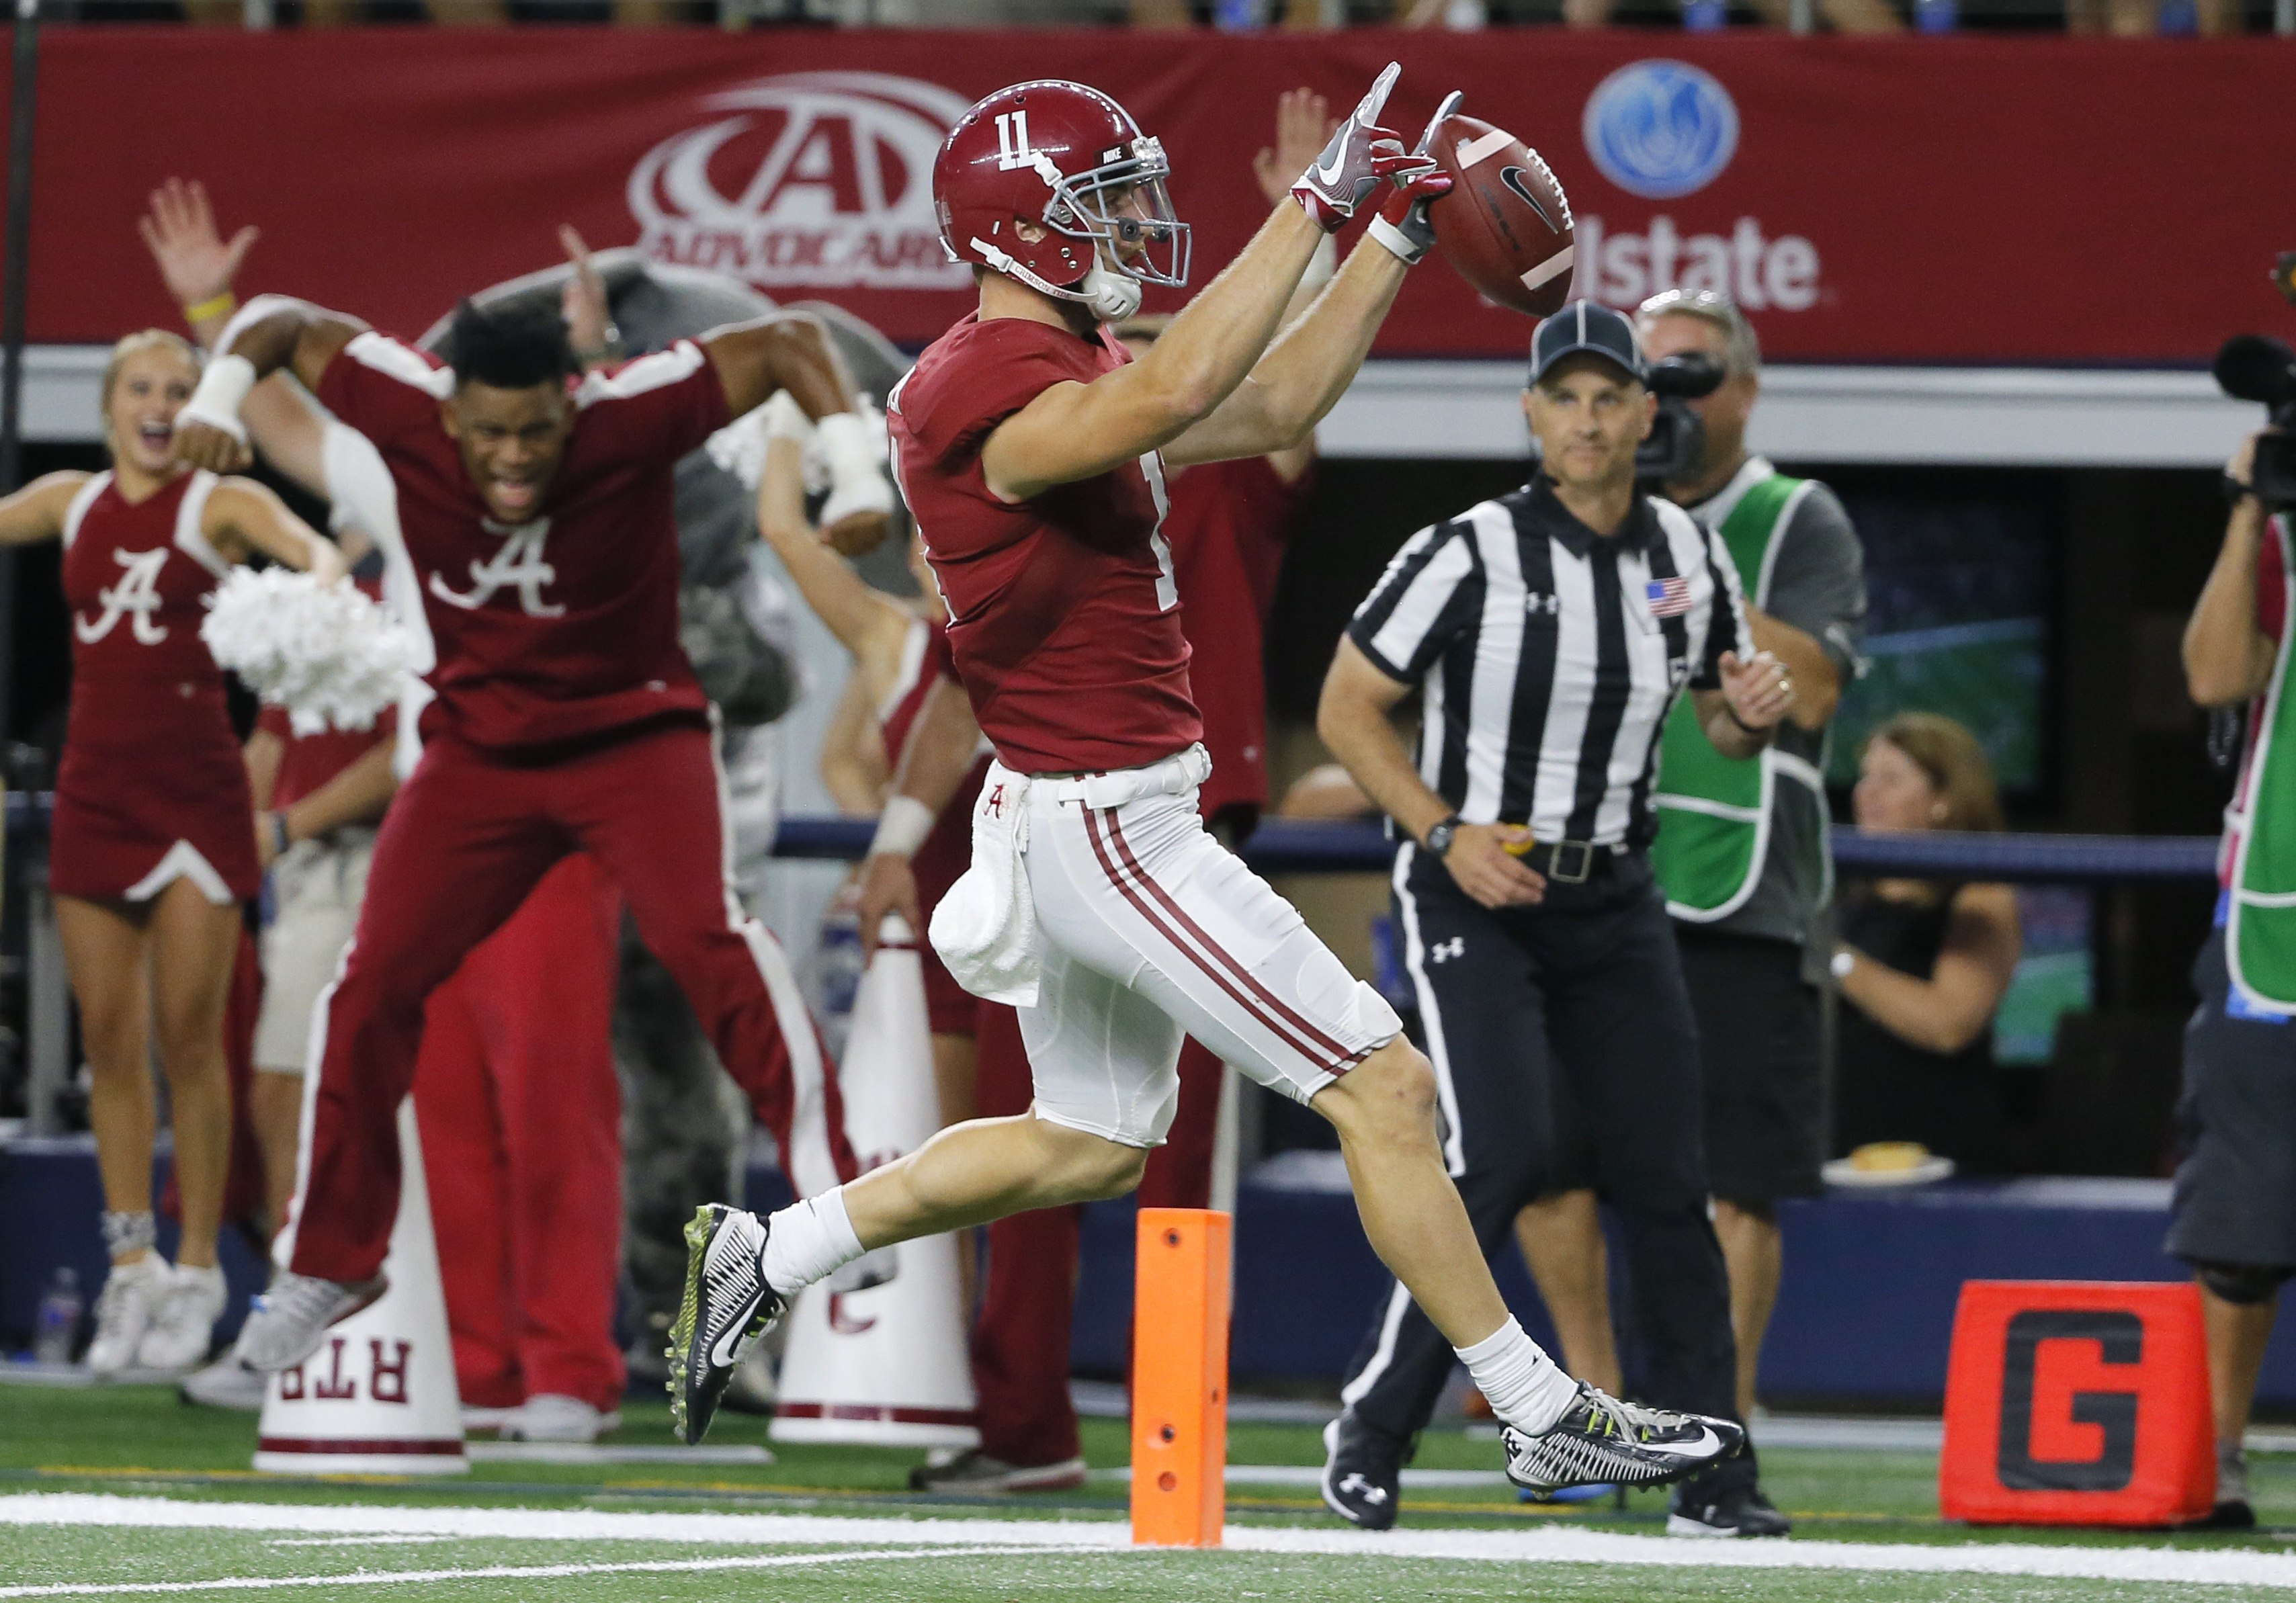 FILe - In this Sept. 3, 2016, file photo, Alabama wide receiver Gehrig Dieter celebrates as he crosses into the end zone after catching a pass during the second half of an NCAA college football game against Southern California, in Arlington, Texas. Teams